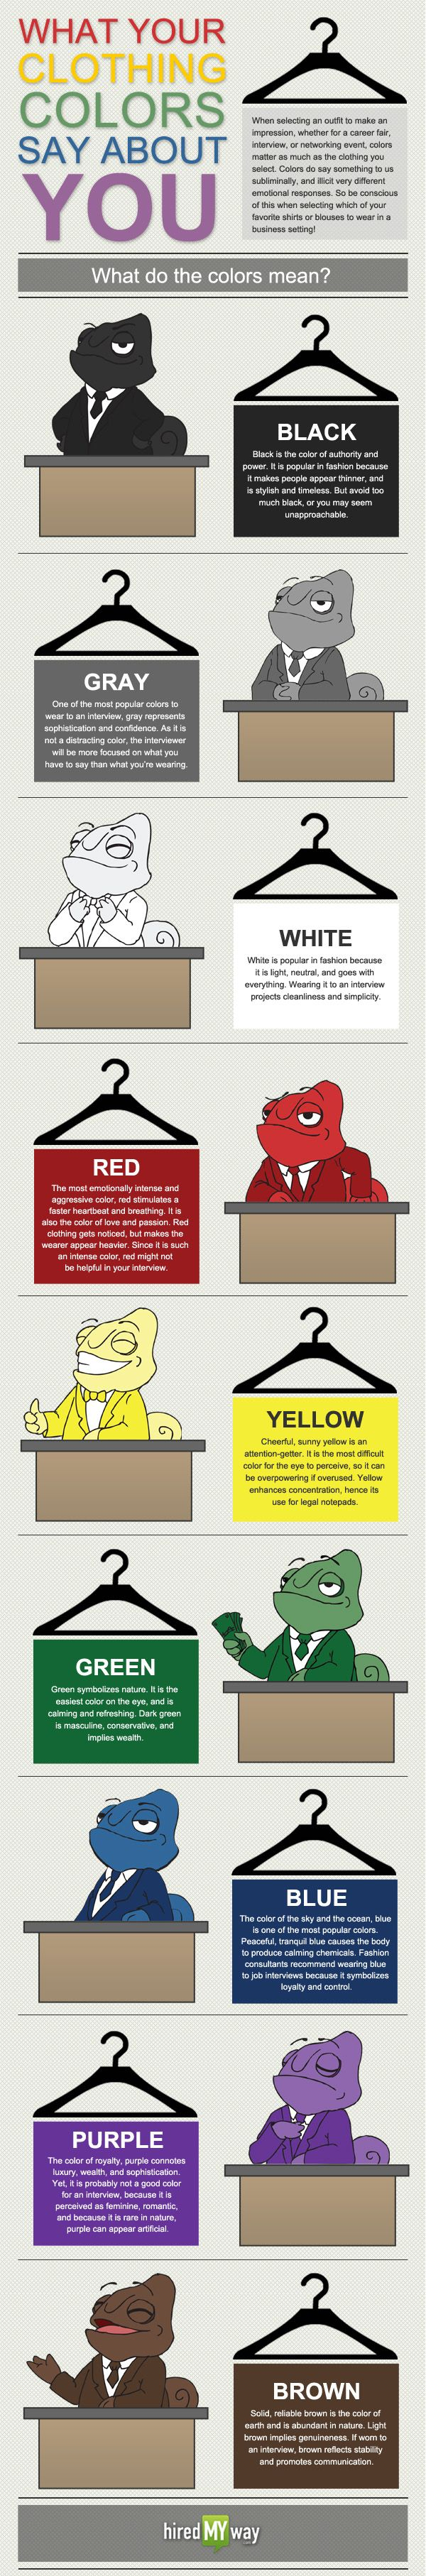 Choosing a right outfit to give your best impression, whether you are going for interview, or office event, colors get first noticed than your clothing. Mostly people do not know what colors do say to us in deeply and make different emotion responses. The following infographic will review what your clothing colors say about your personality and thinking. So be wisely select your clothing.  http://ipadfour.blogspot.com/2013/03/what-your-clothing-colors-say-about-your-personality.html #colors